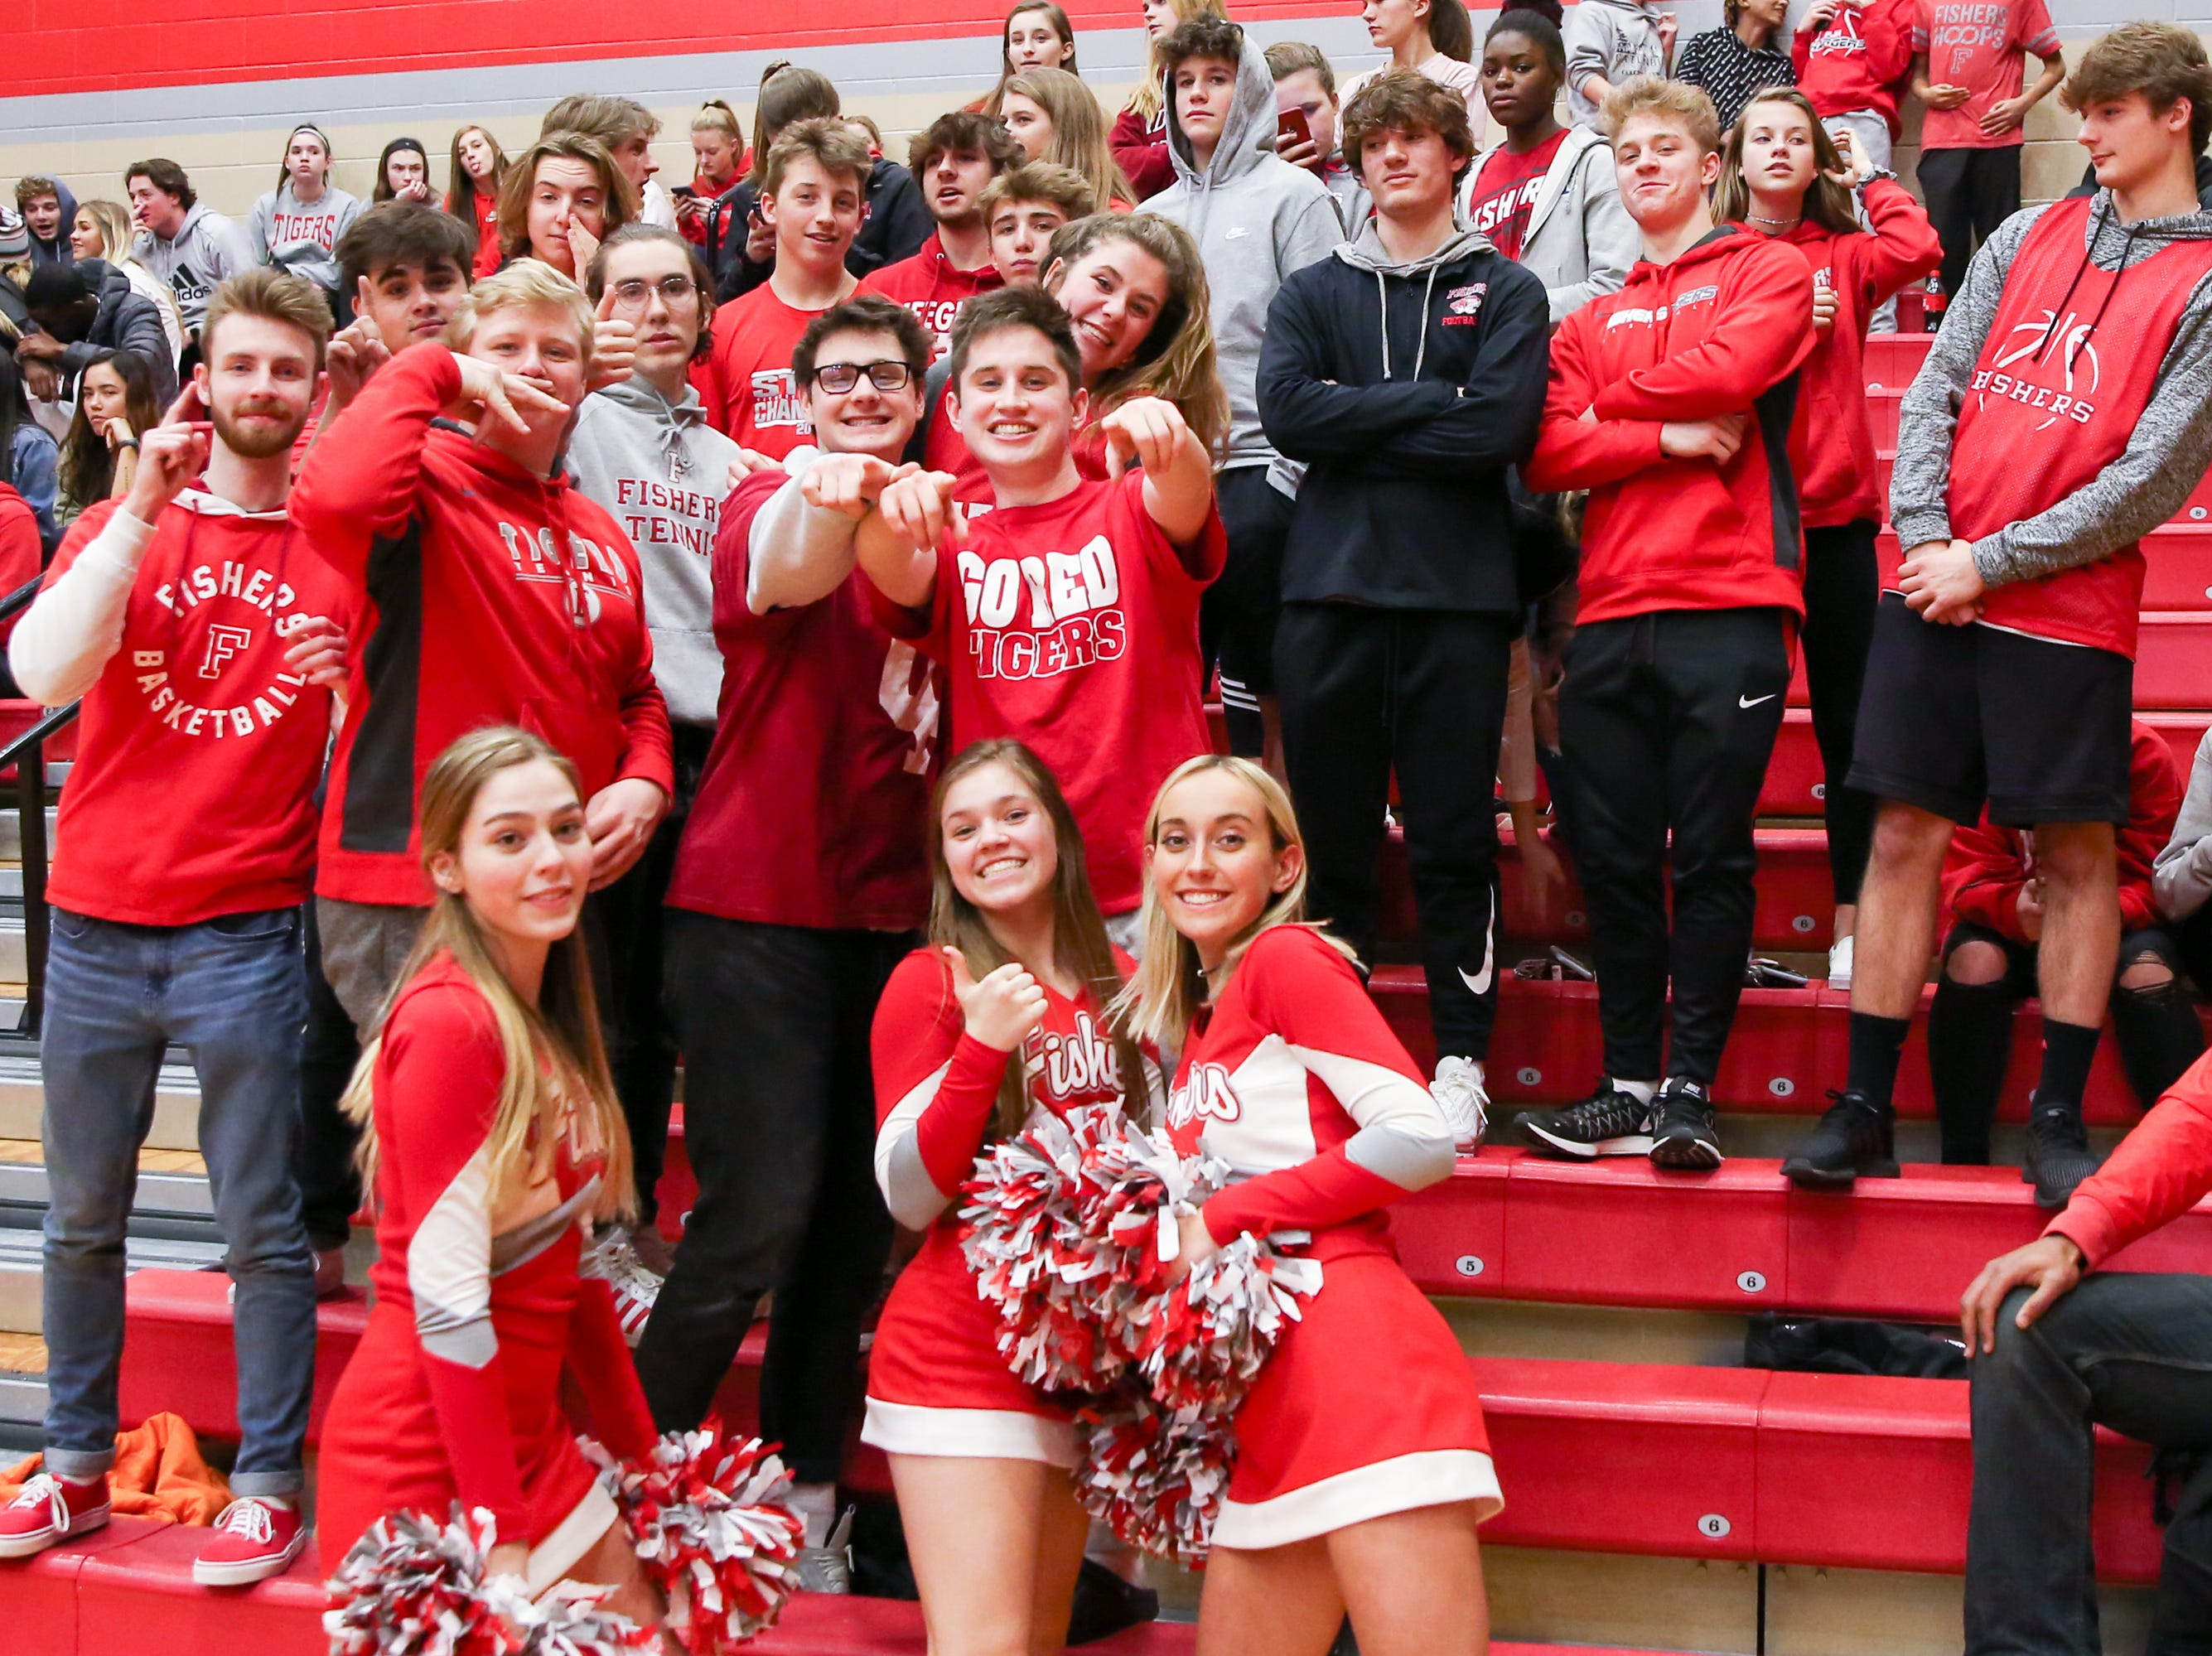 The Fisher student cheer section kept their team spirit high during the second half of Zionsville vs. Fishers high school boys varsity basketball game held at Fishers High School, February 15, 2019.